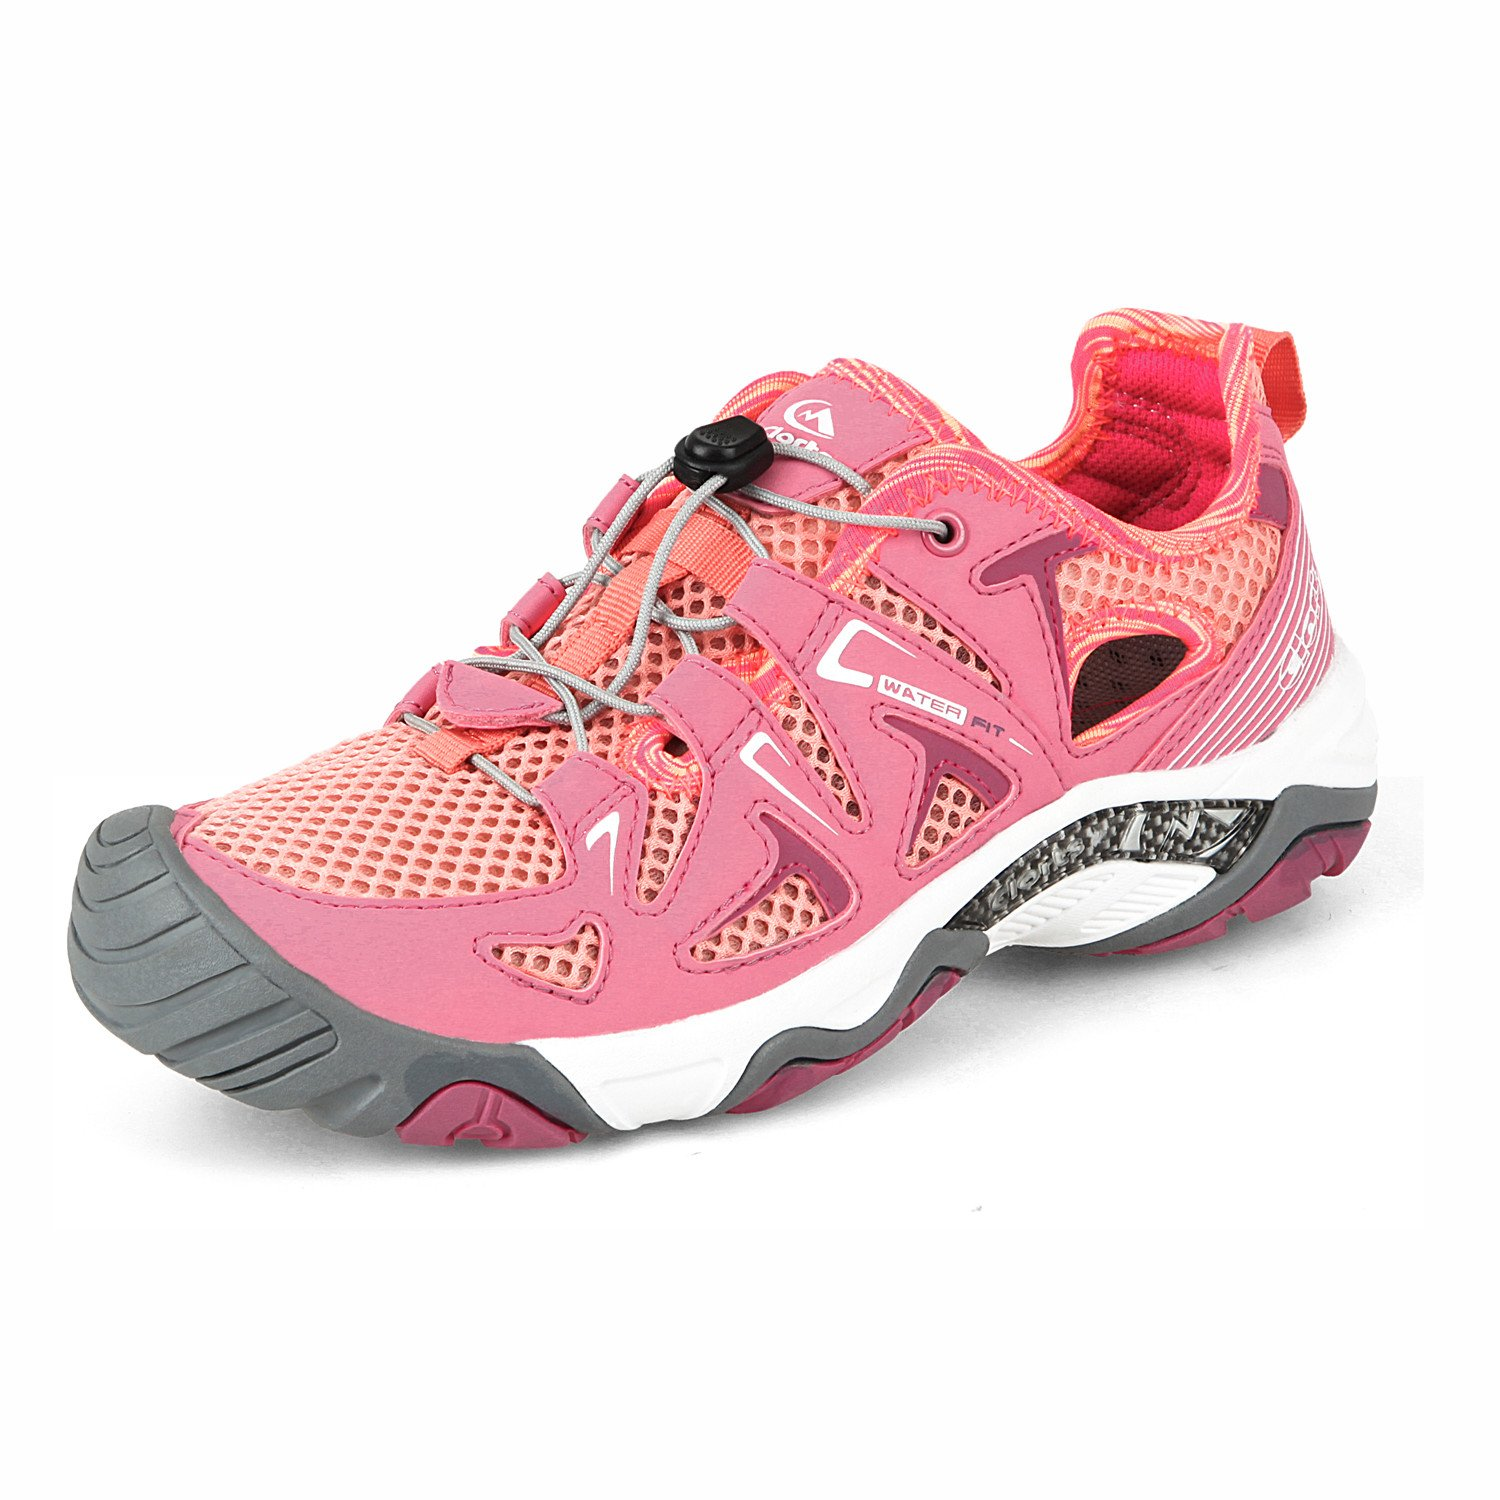 Clorts Women's Water Shoe Closed Toe Quick Drying Hiking Sandal 3H027 B073P5MJJG 5.5 M US|Pink